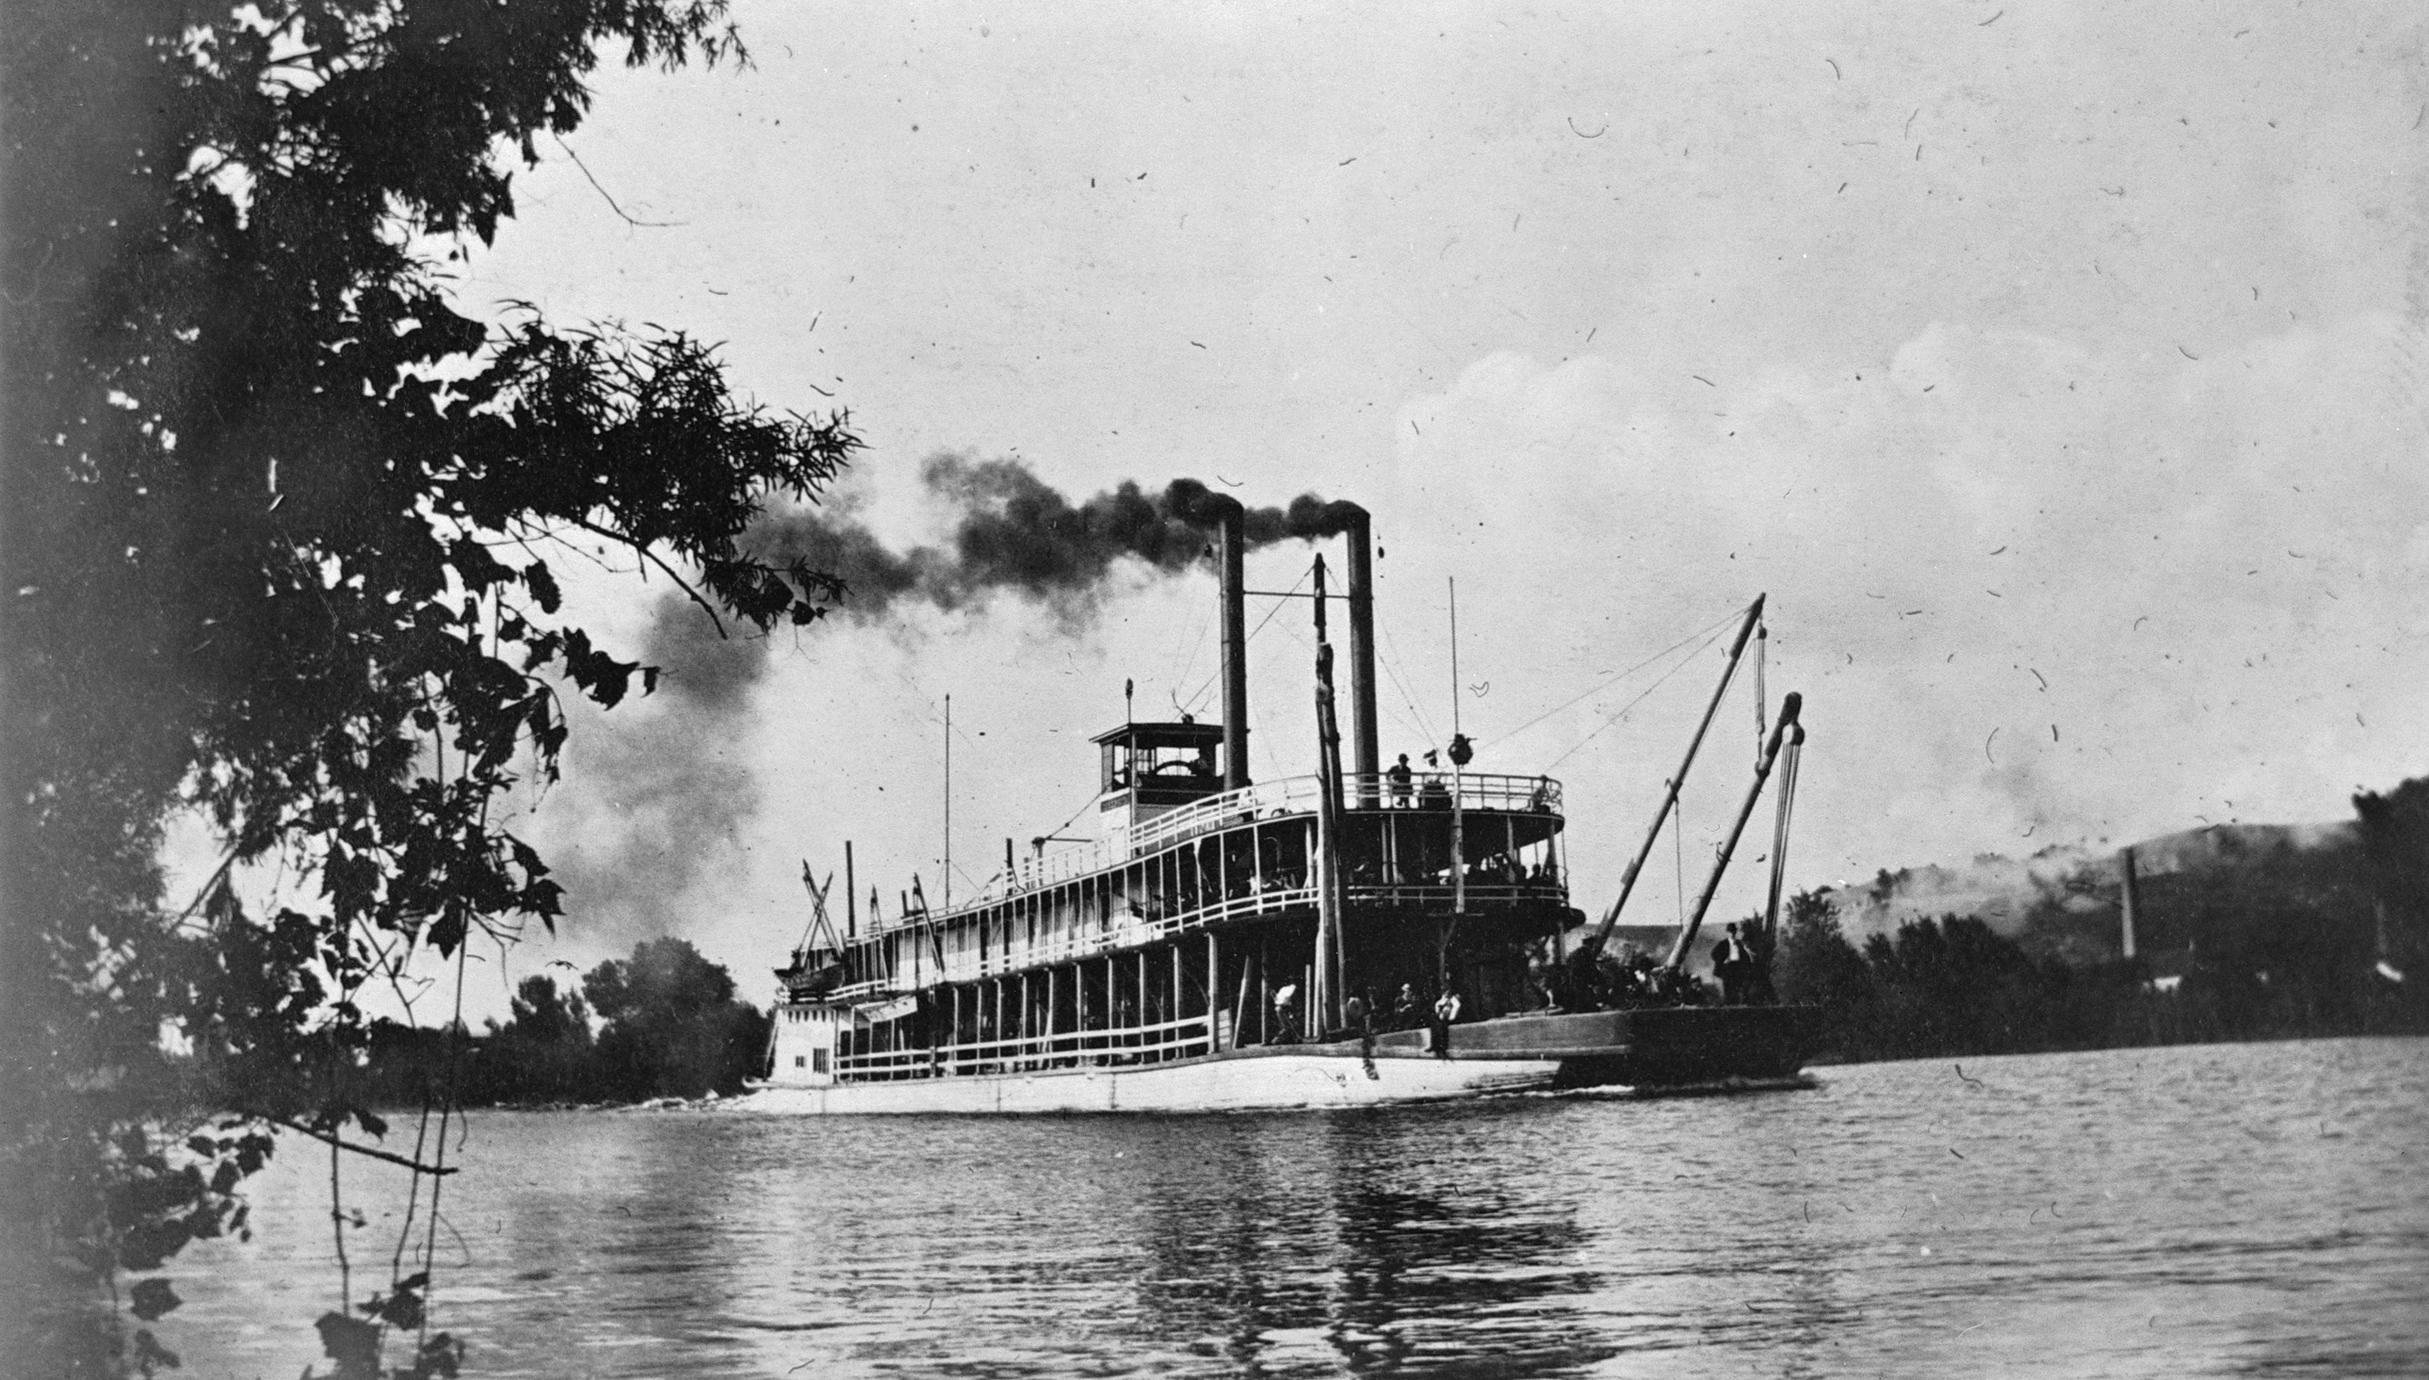 Josephine (Packet/Snagboat, 1873-1907)